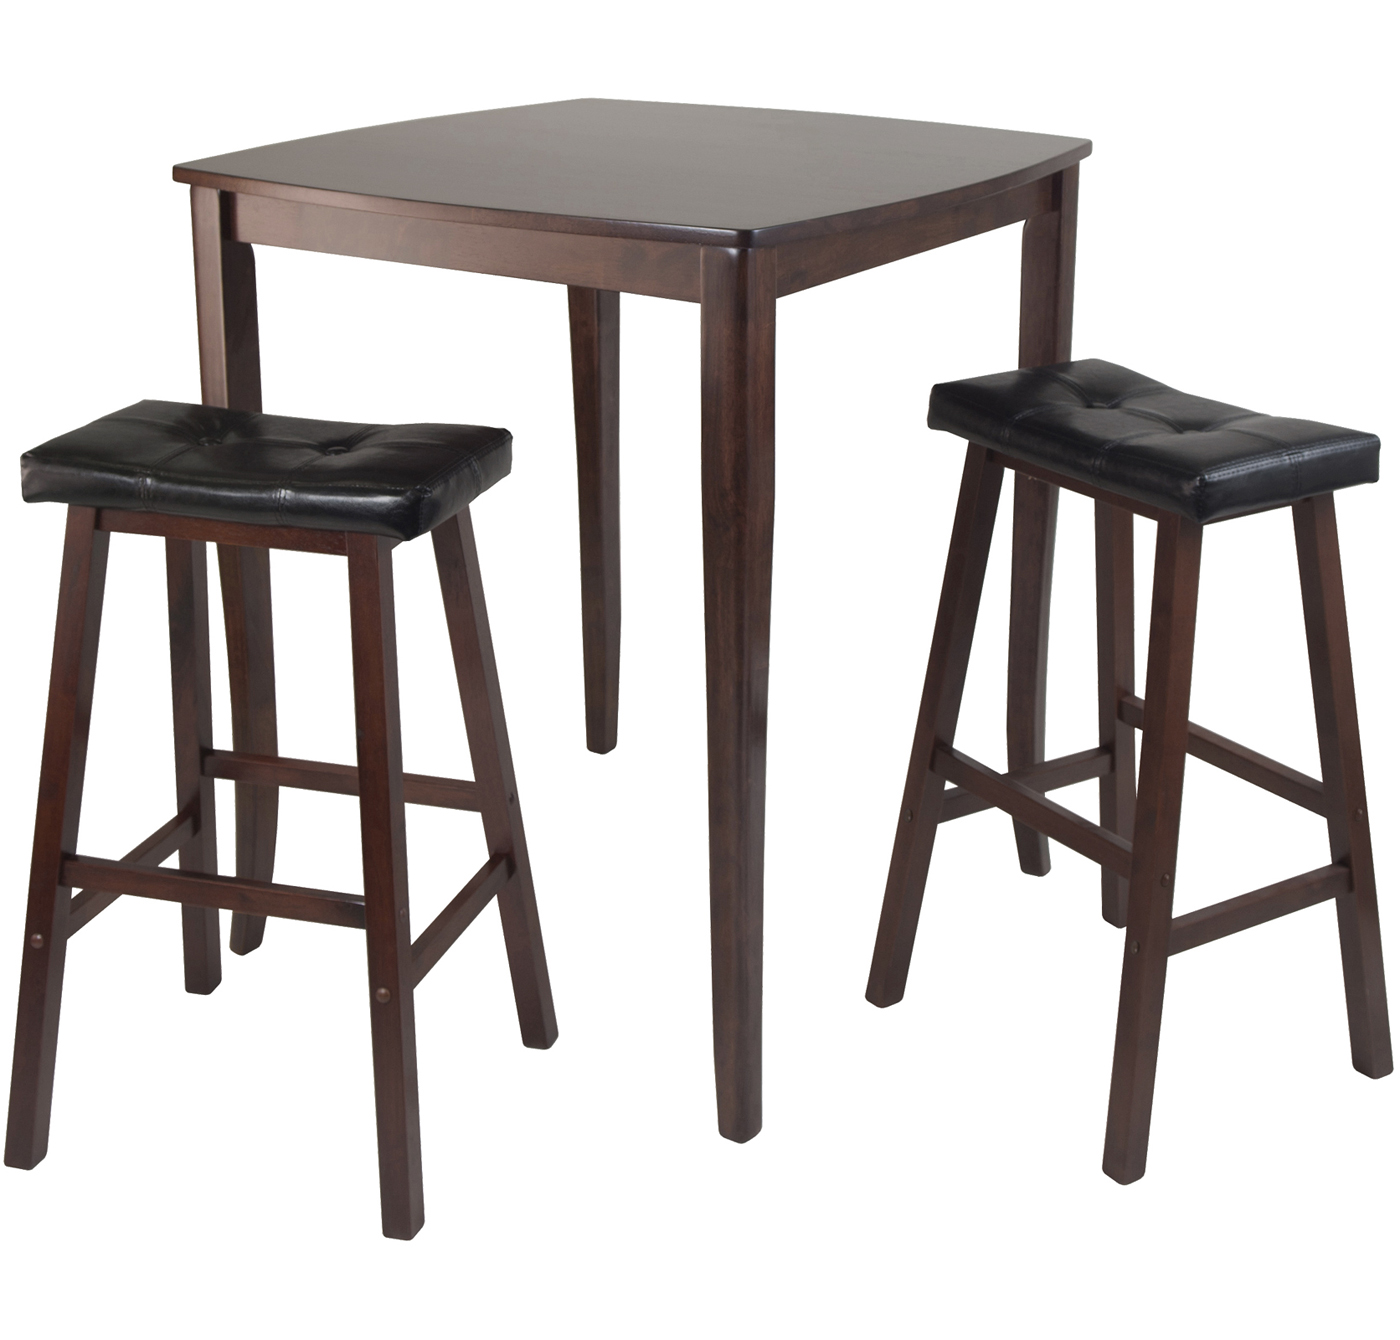 High Table With Cushion Saddle Stools (Set Of 3) In Bar